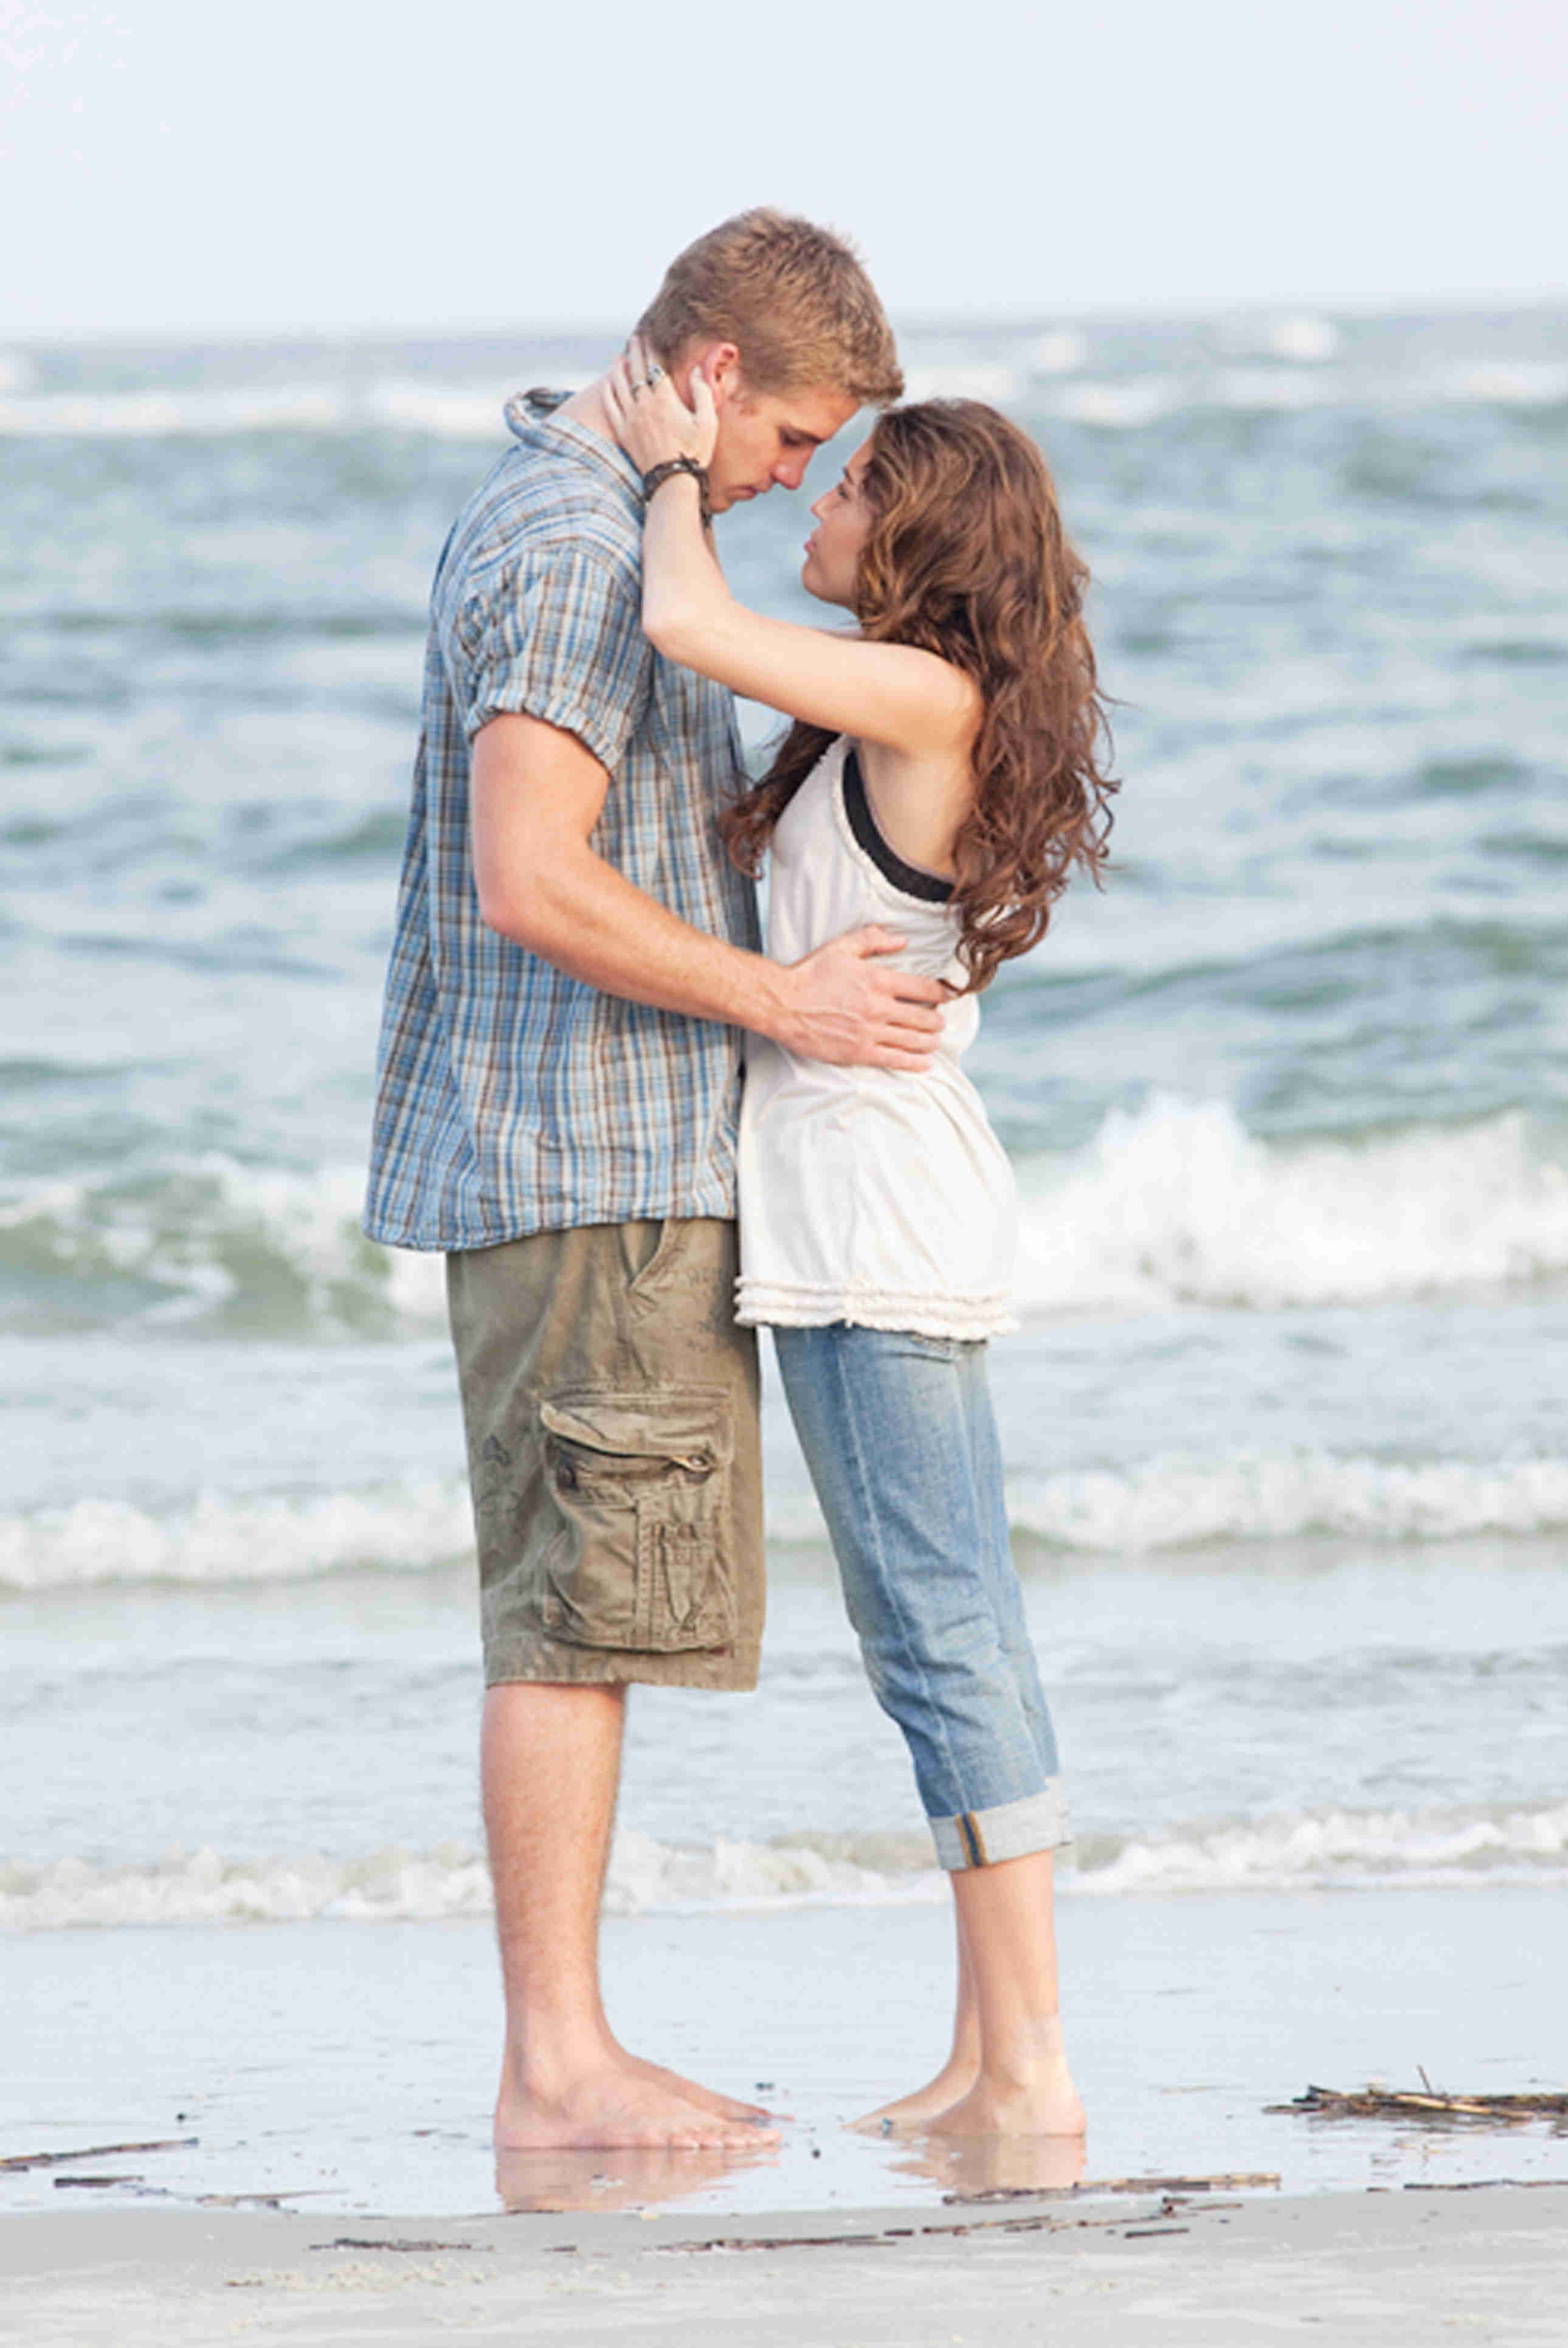 Liam Hemsworth stars as Will Blakelee and Miley Cyrus stars as Veronica 'Ronnie' Miller in Walt Disney Pictures' The Last Song (2010)